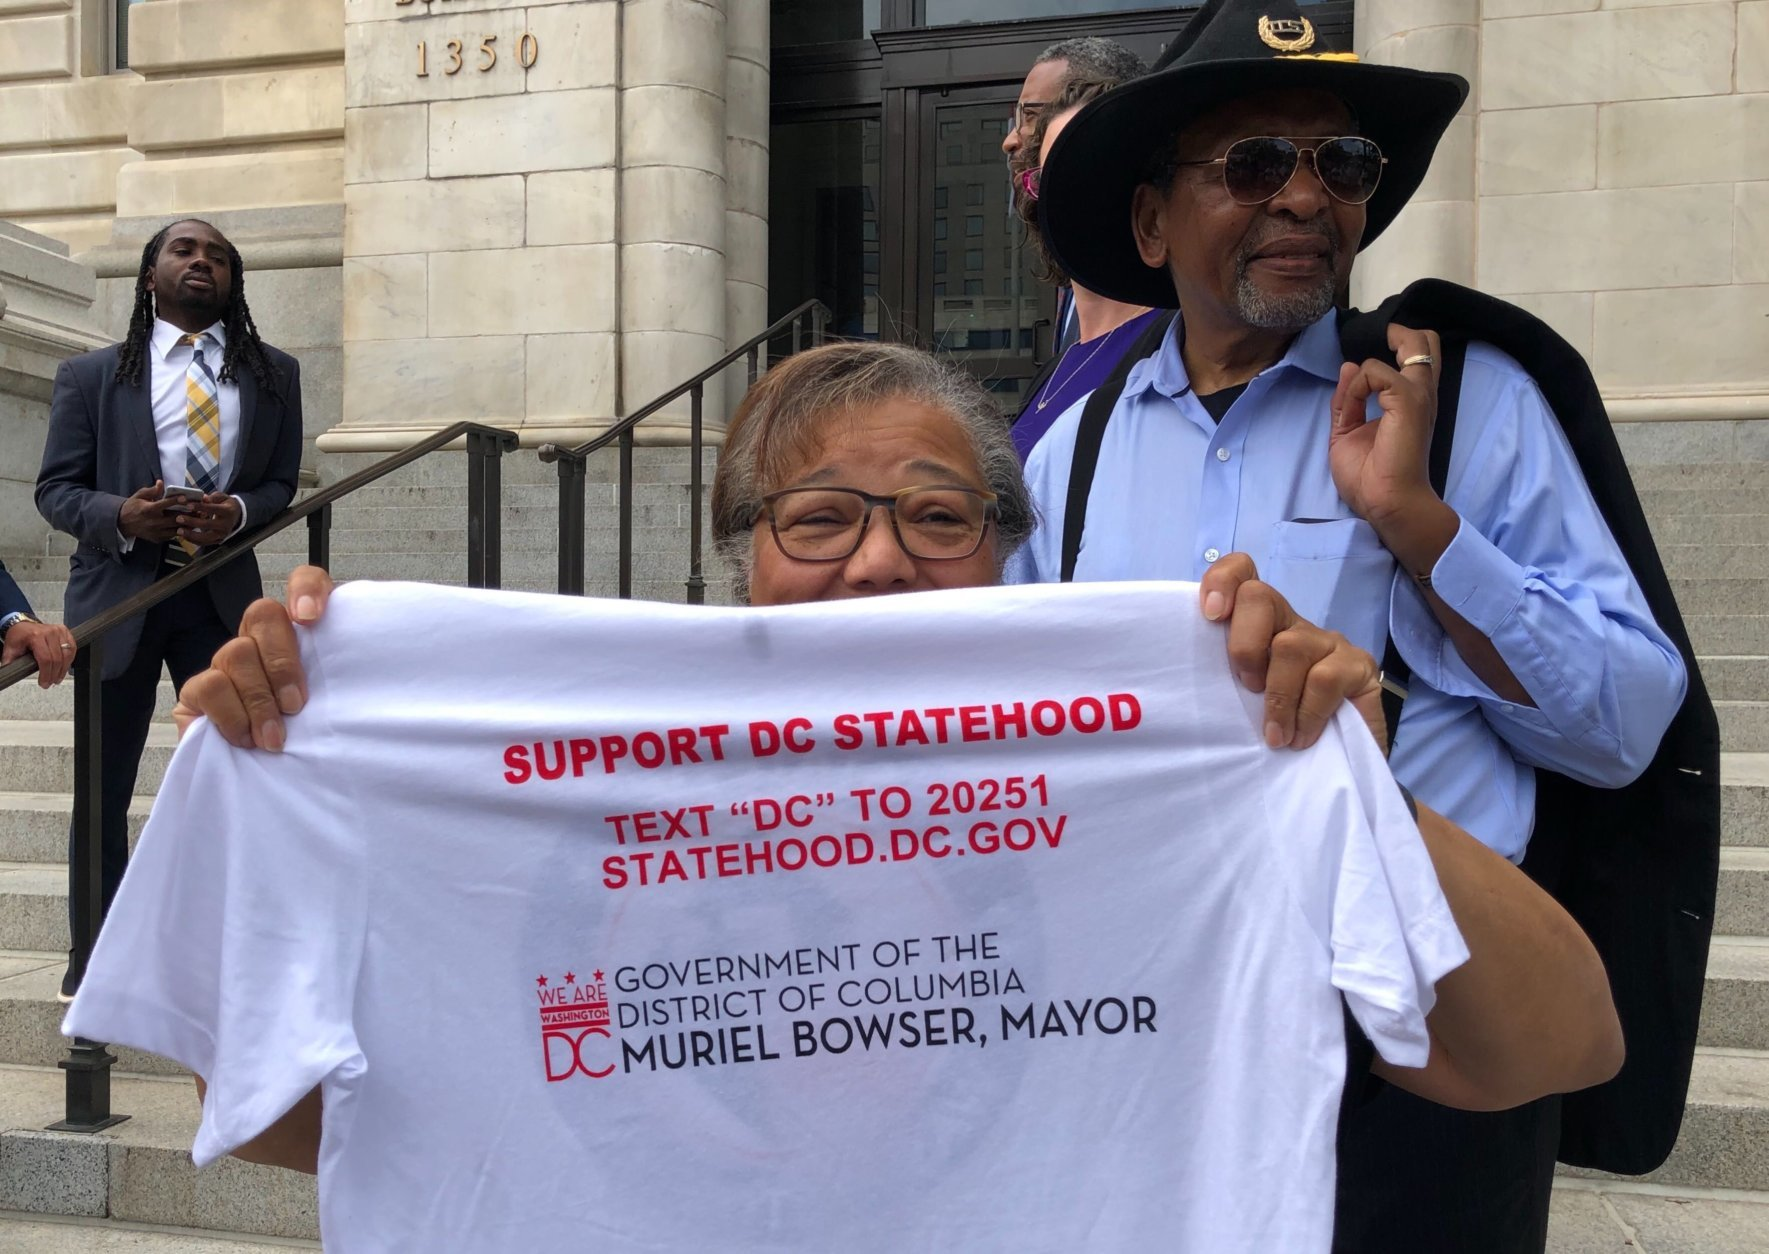 Rally, march planned after 'momentous' DC statehood hearing on Capitol Hill